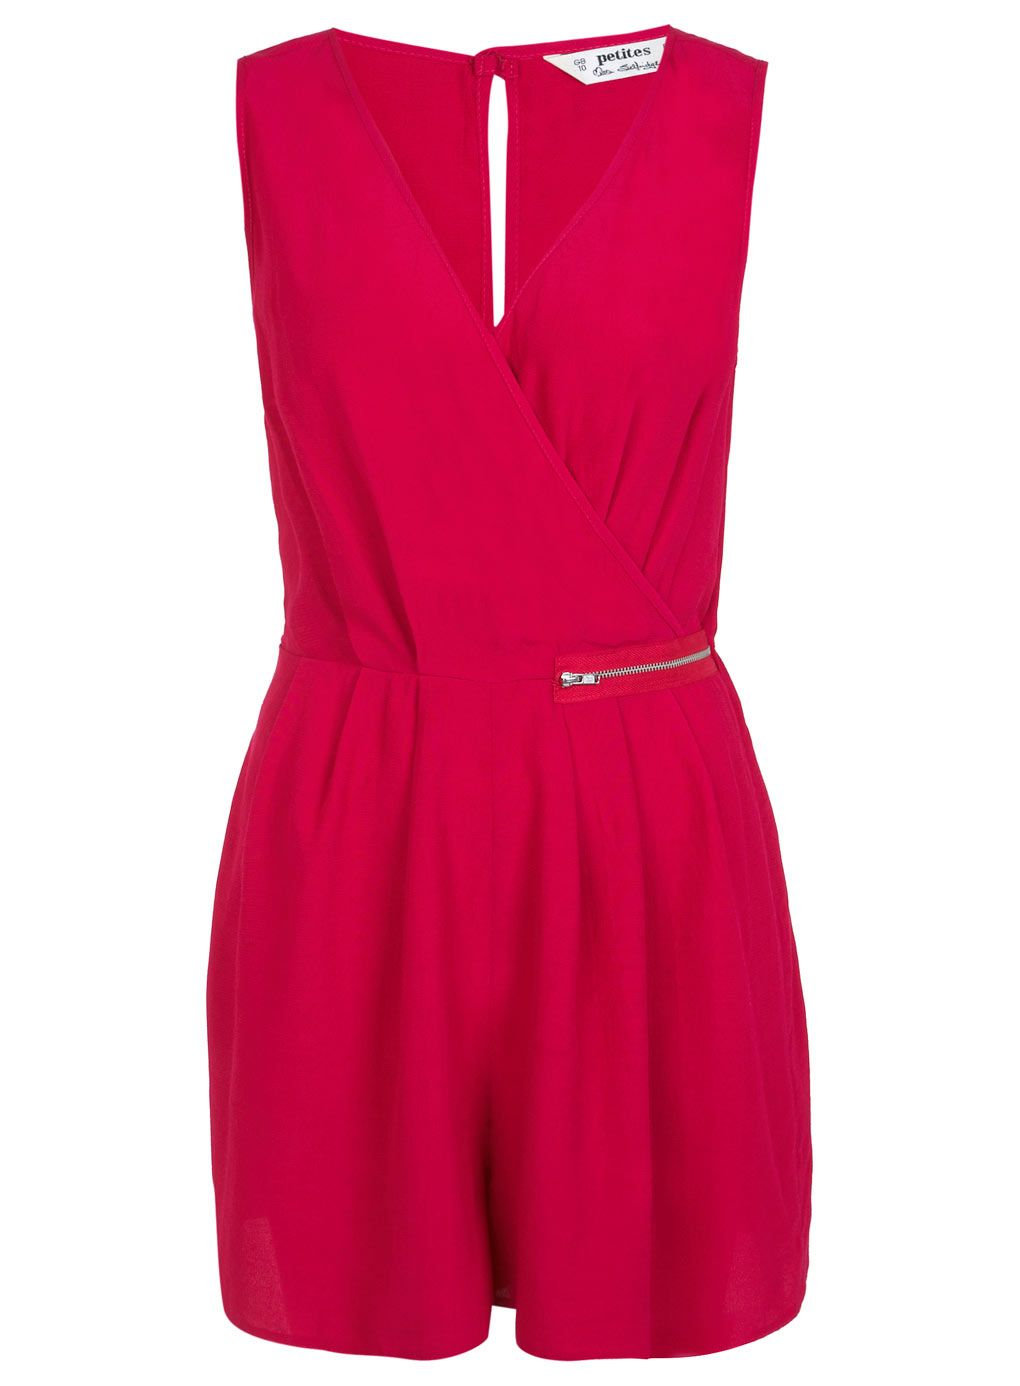 92319ec745d Petites Hot Pink Playsuit - View All - Going Out - Miss Selfridge Europe